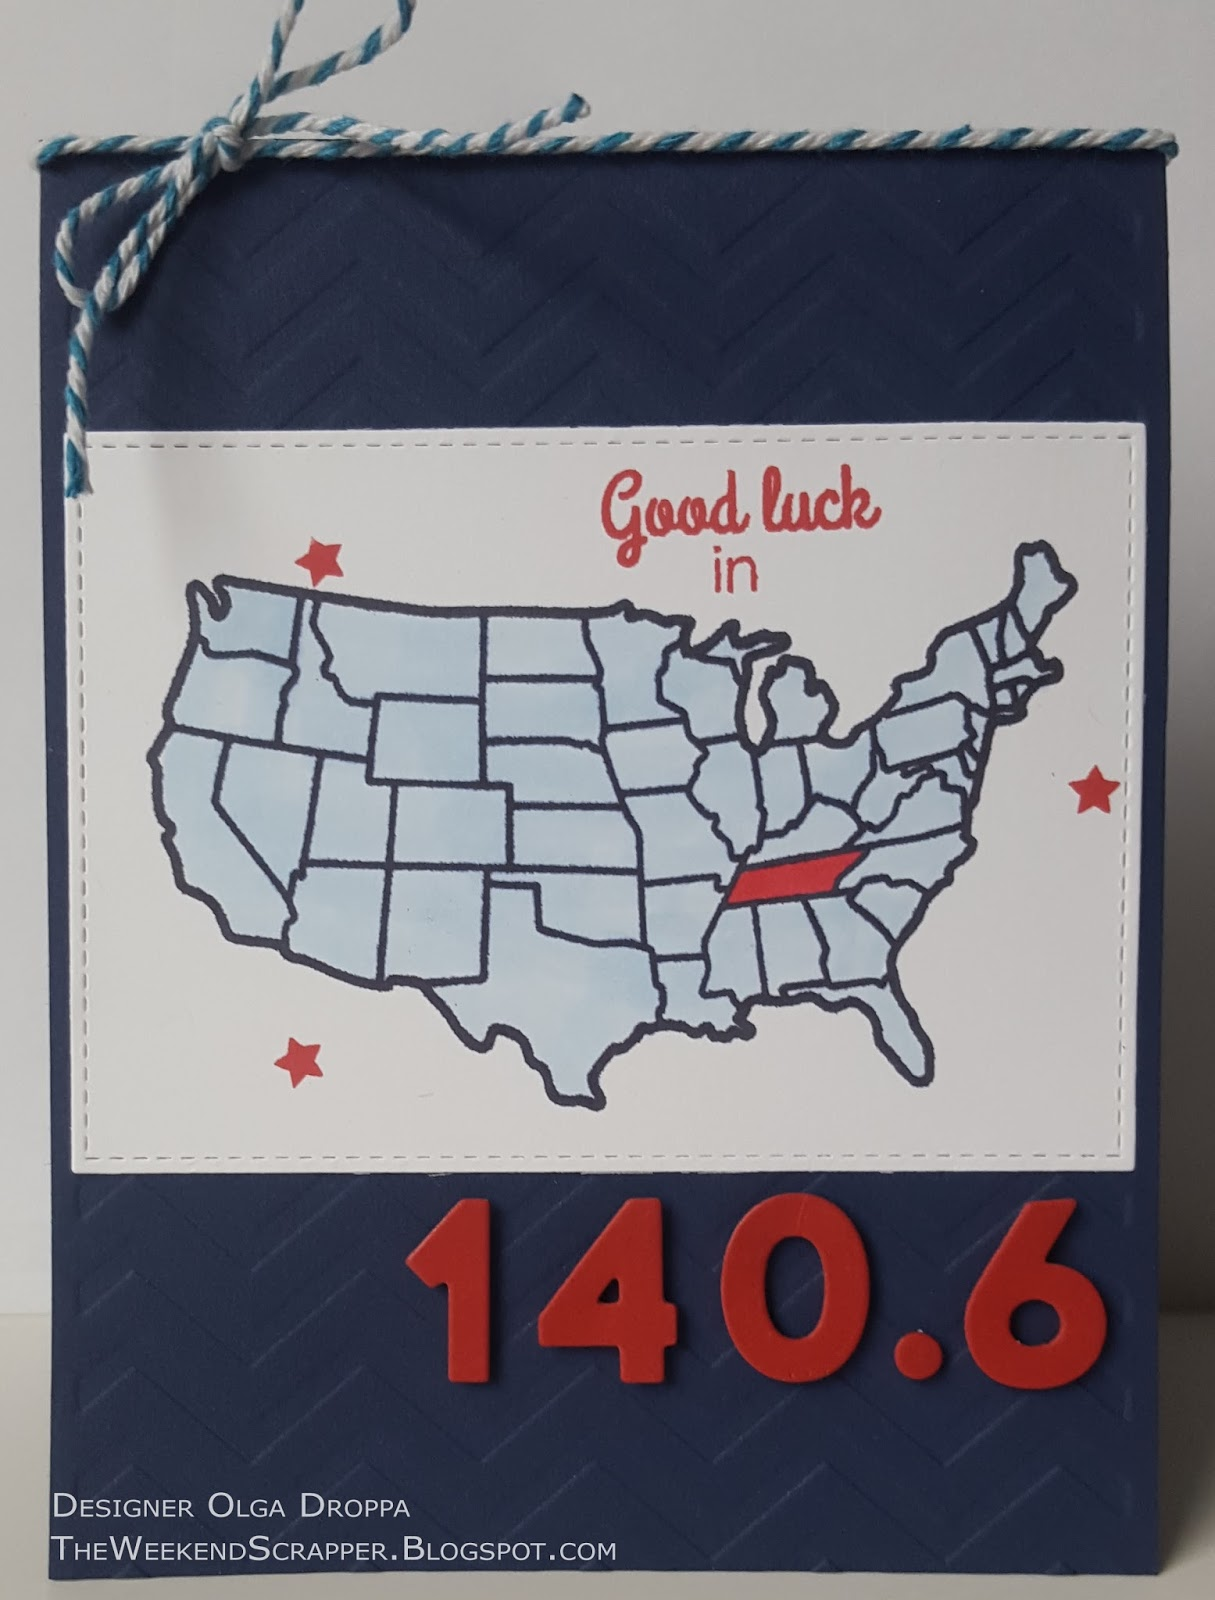 red white and blue us map card good luck 140 6 triathlon race